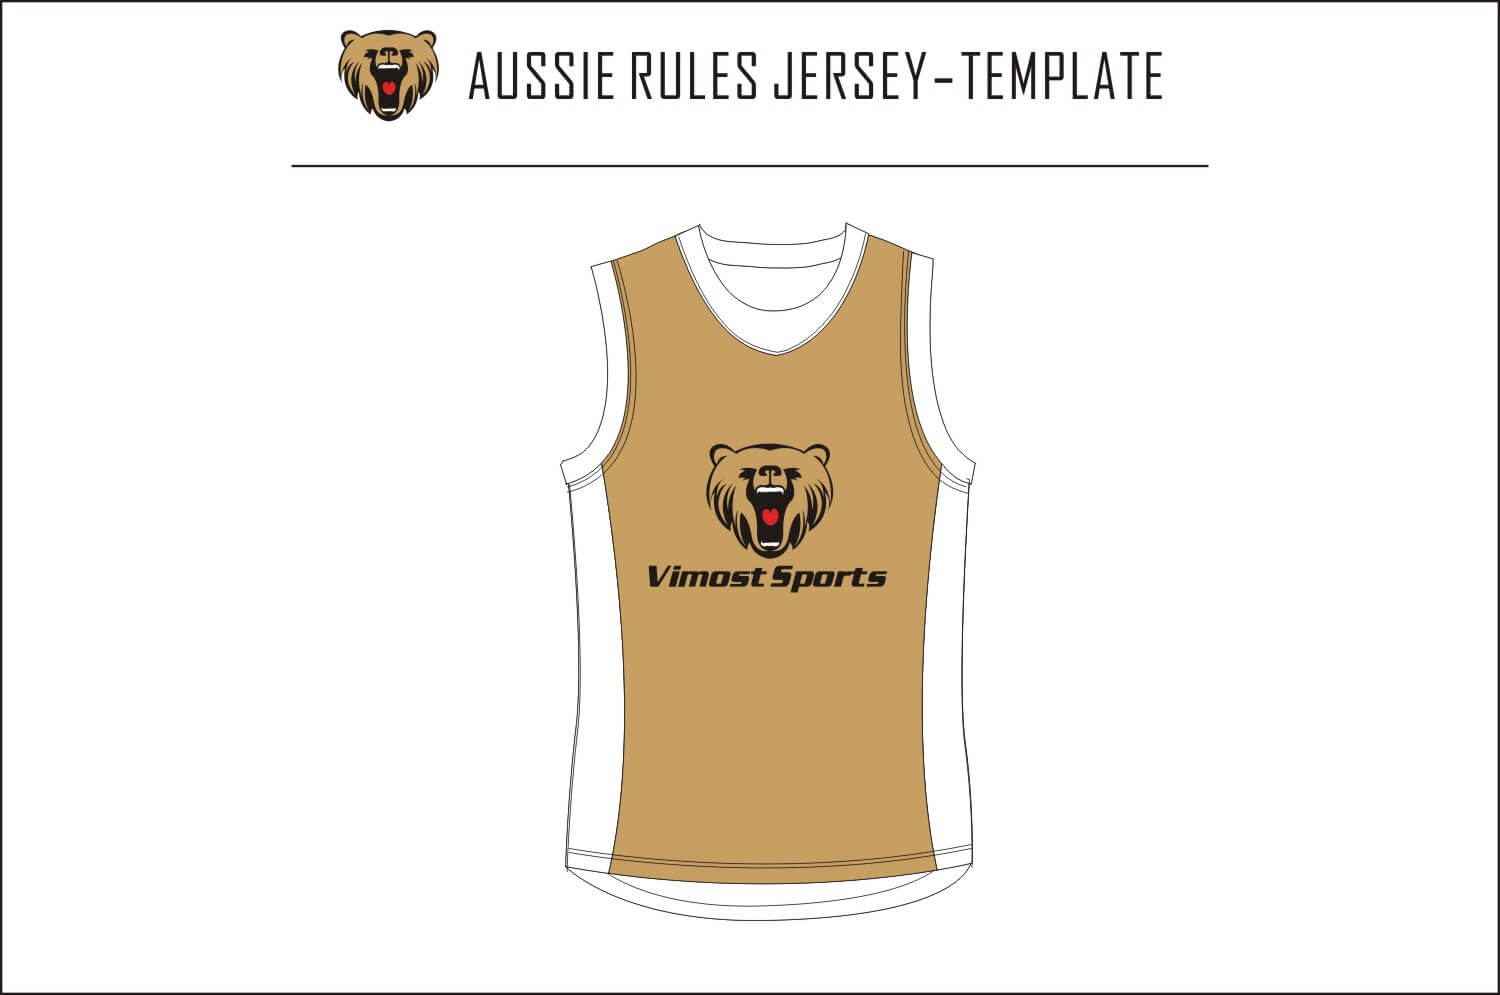 Aussie Rules Jersey-template